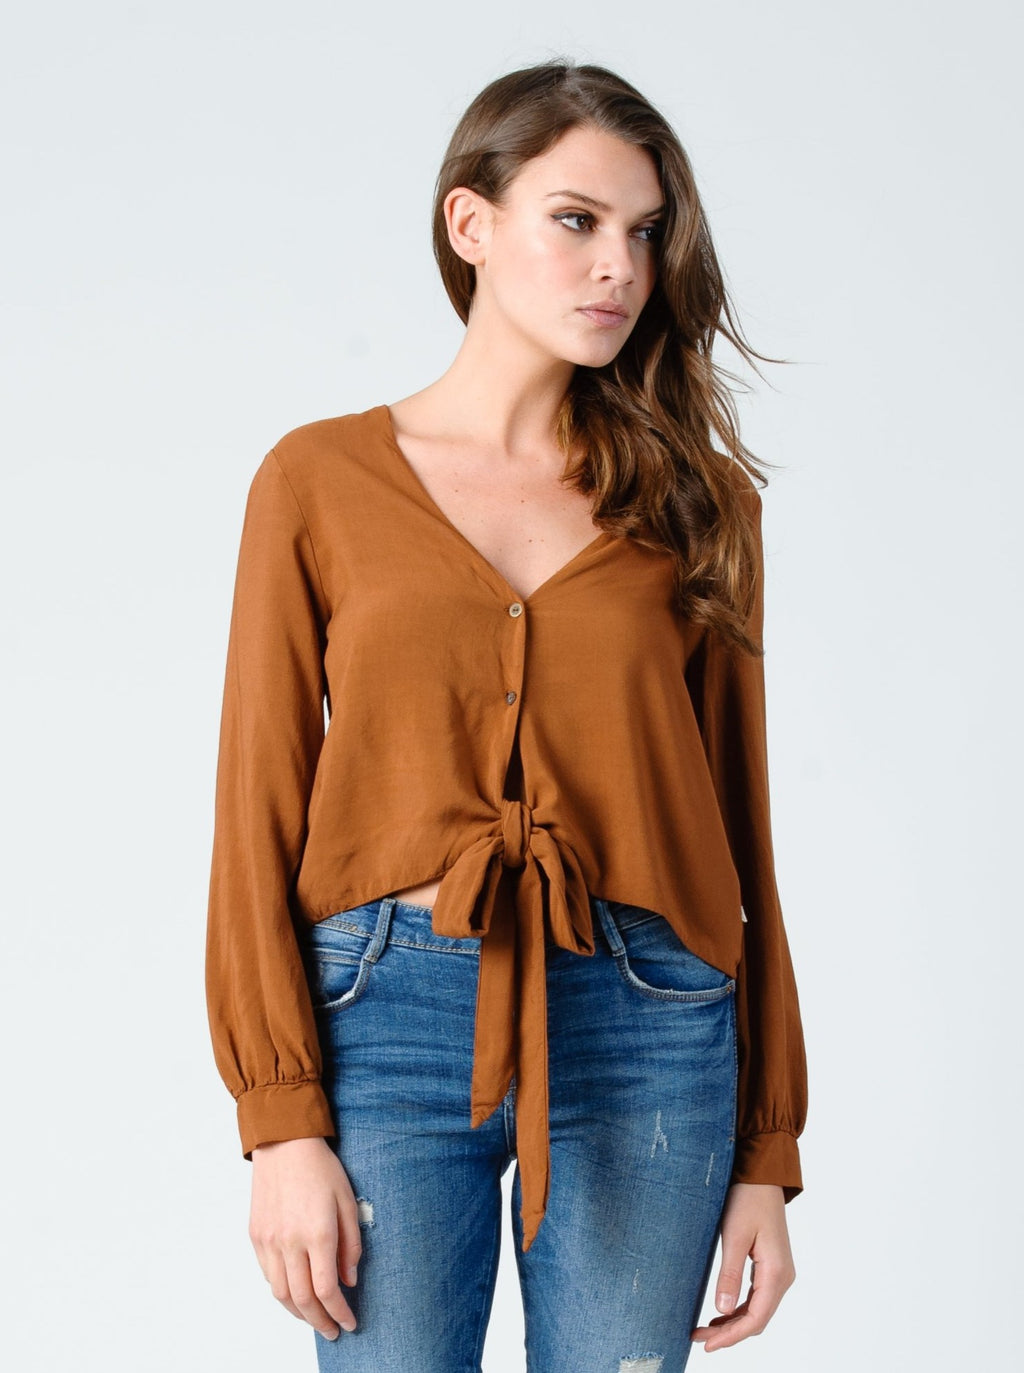 SABRINA long sleeve button up top in relic bronze